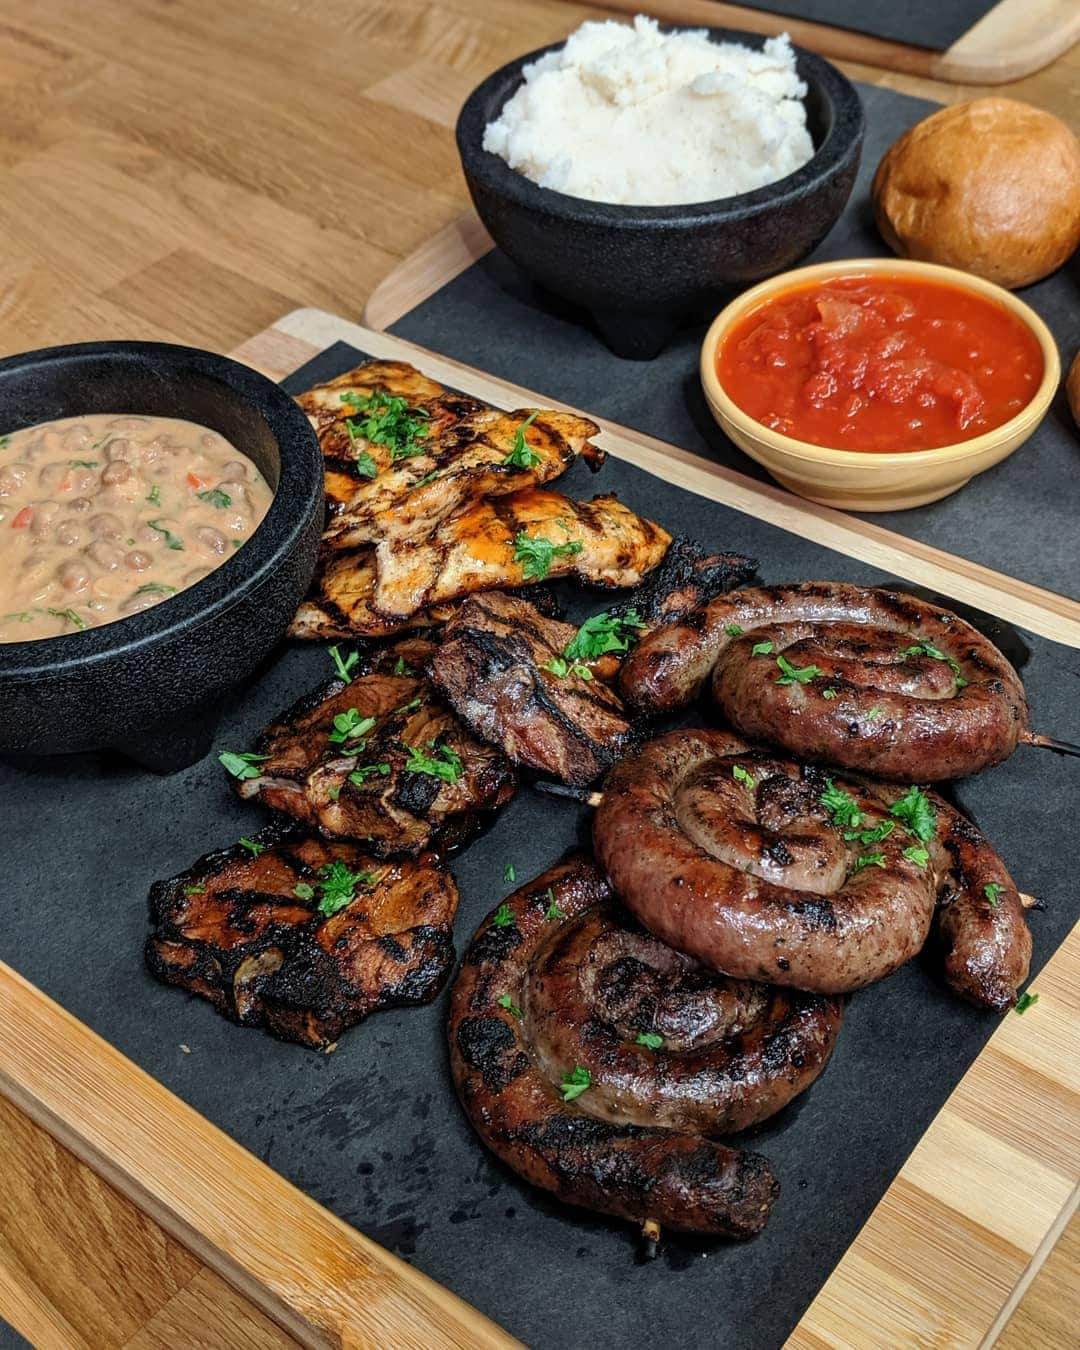 Easy boerewors recipes for unforgettable South African dinners